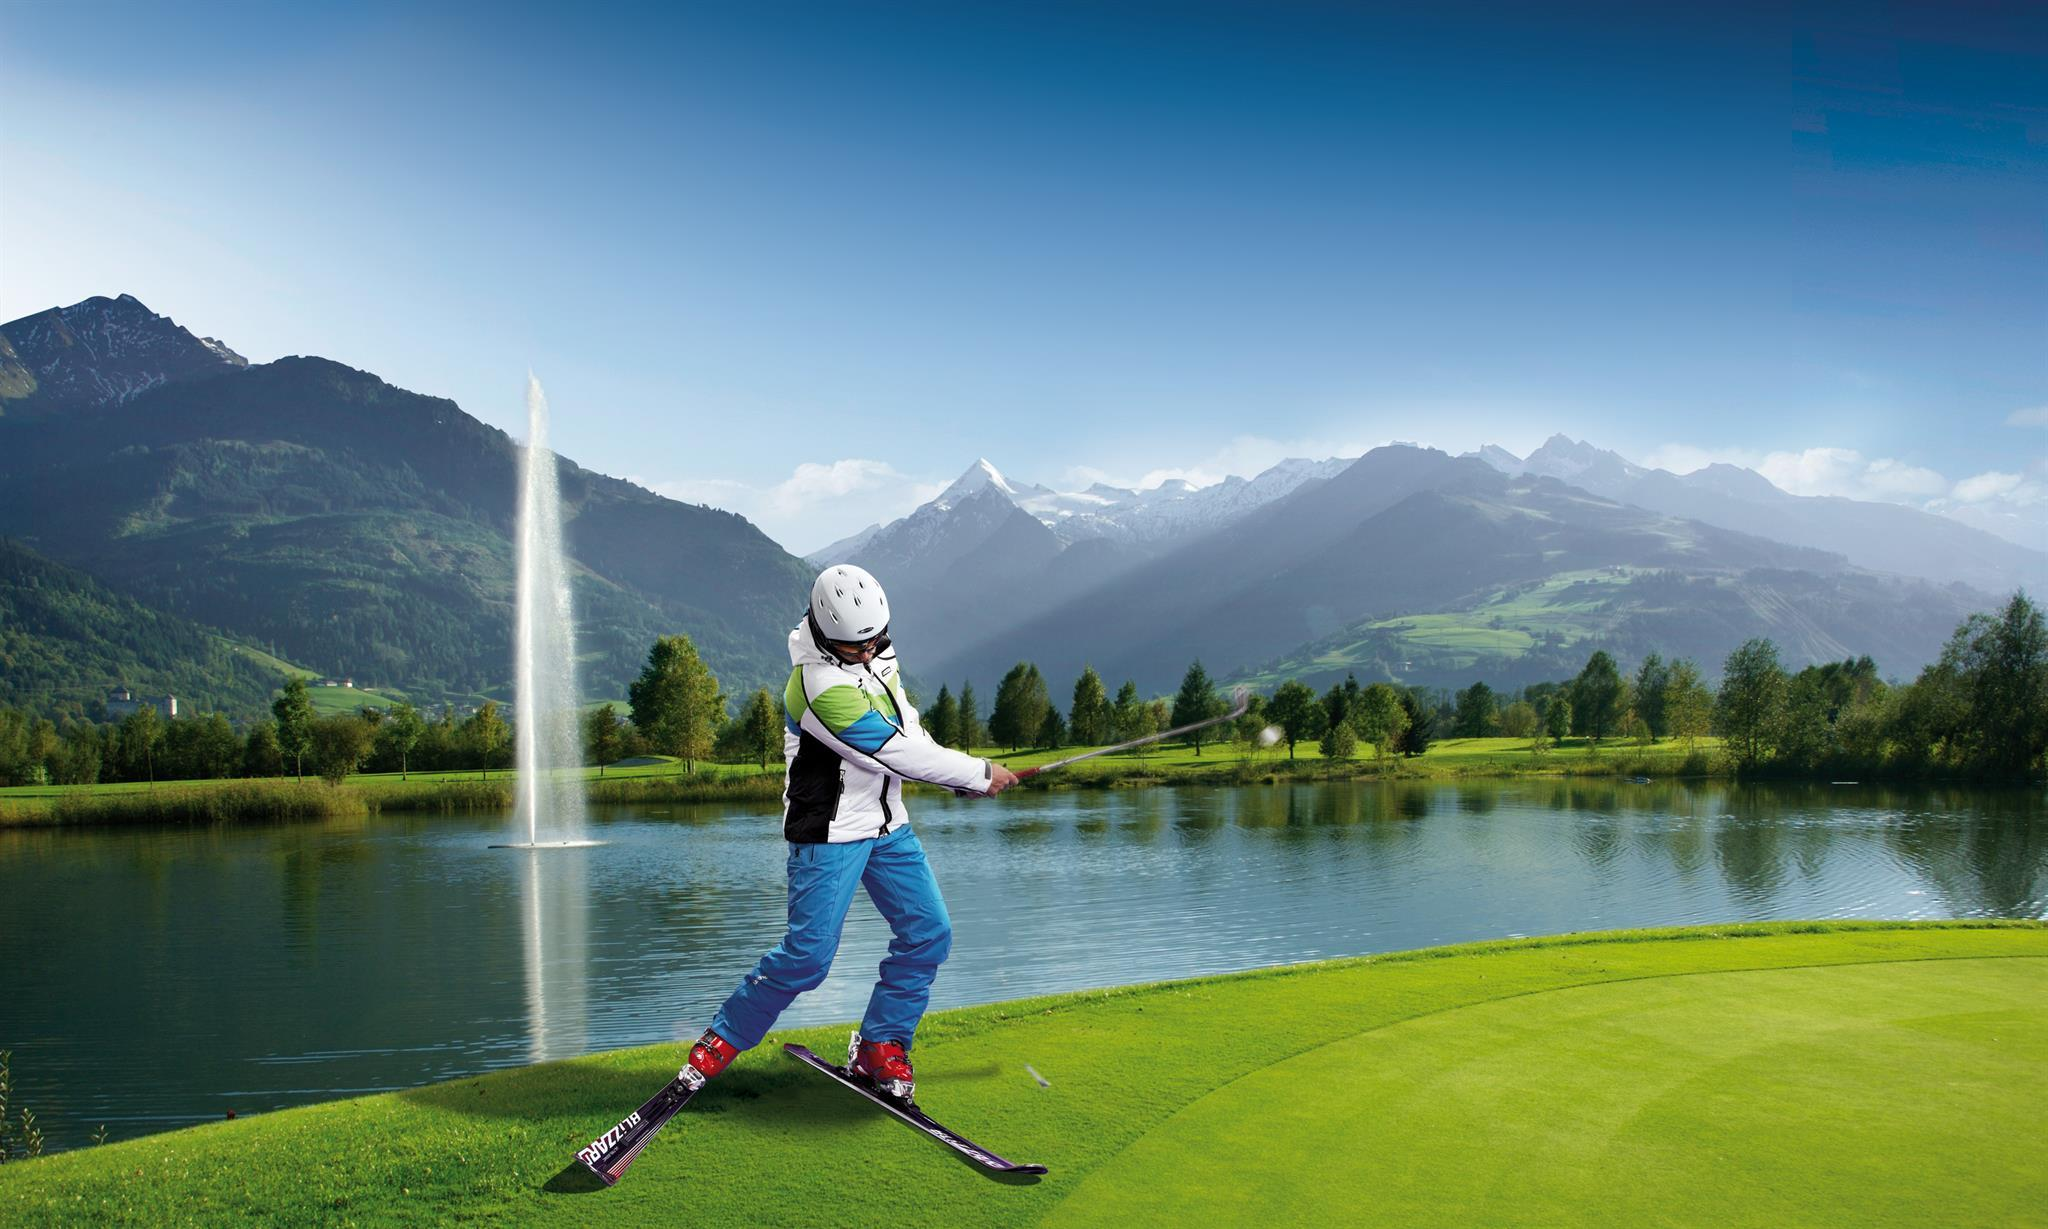 Ski & Golf World Championship 2020 - 24/05/2020